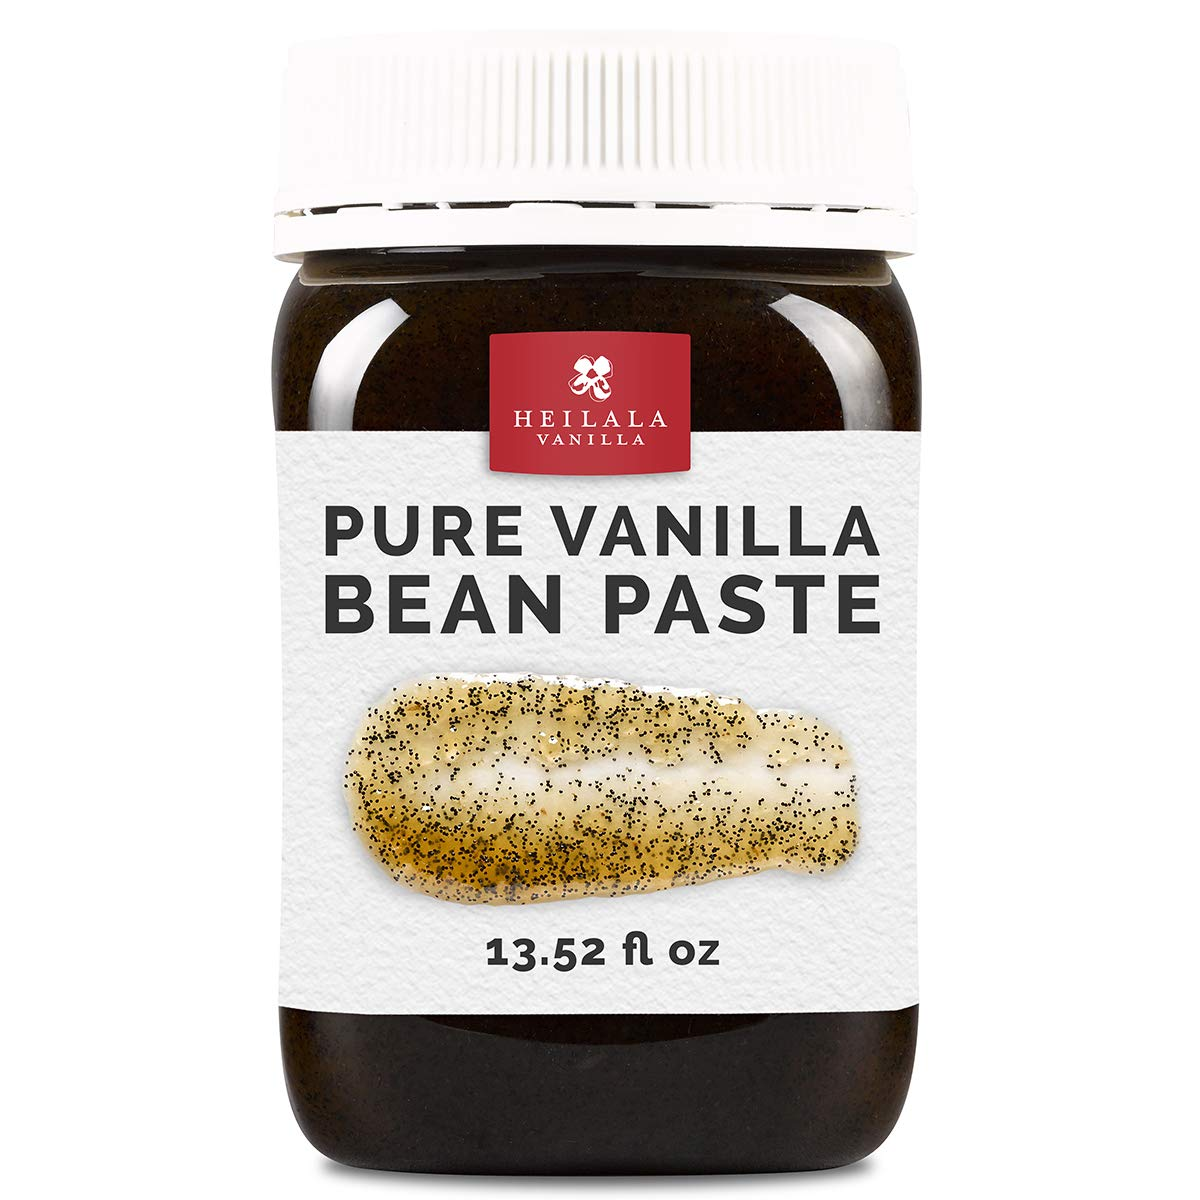 Vanilla Bean Paste for Baking - Heilala Vanilla, the Choice of the Worlds Best Chefs & Bakers, Using Sustainable, Ethically Sourced Vanilla, Multi-Award Winning, Hand-Picked from Polynesia, 13.52 oz by Heilala